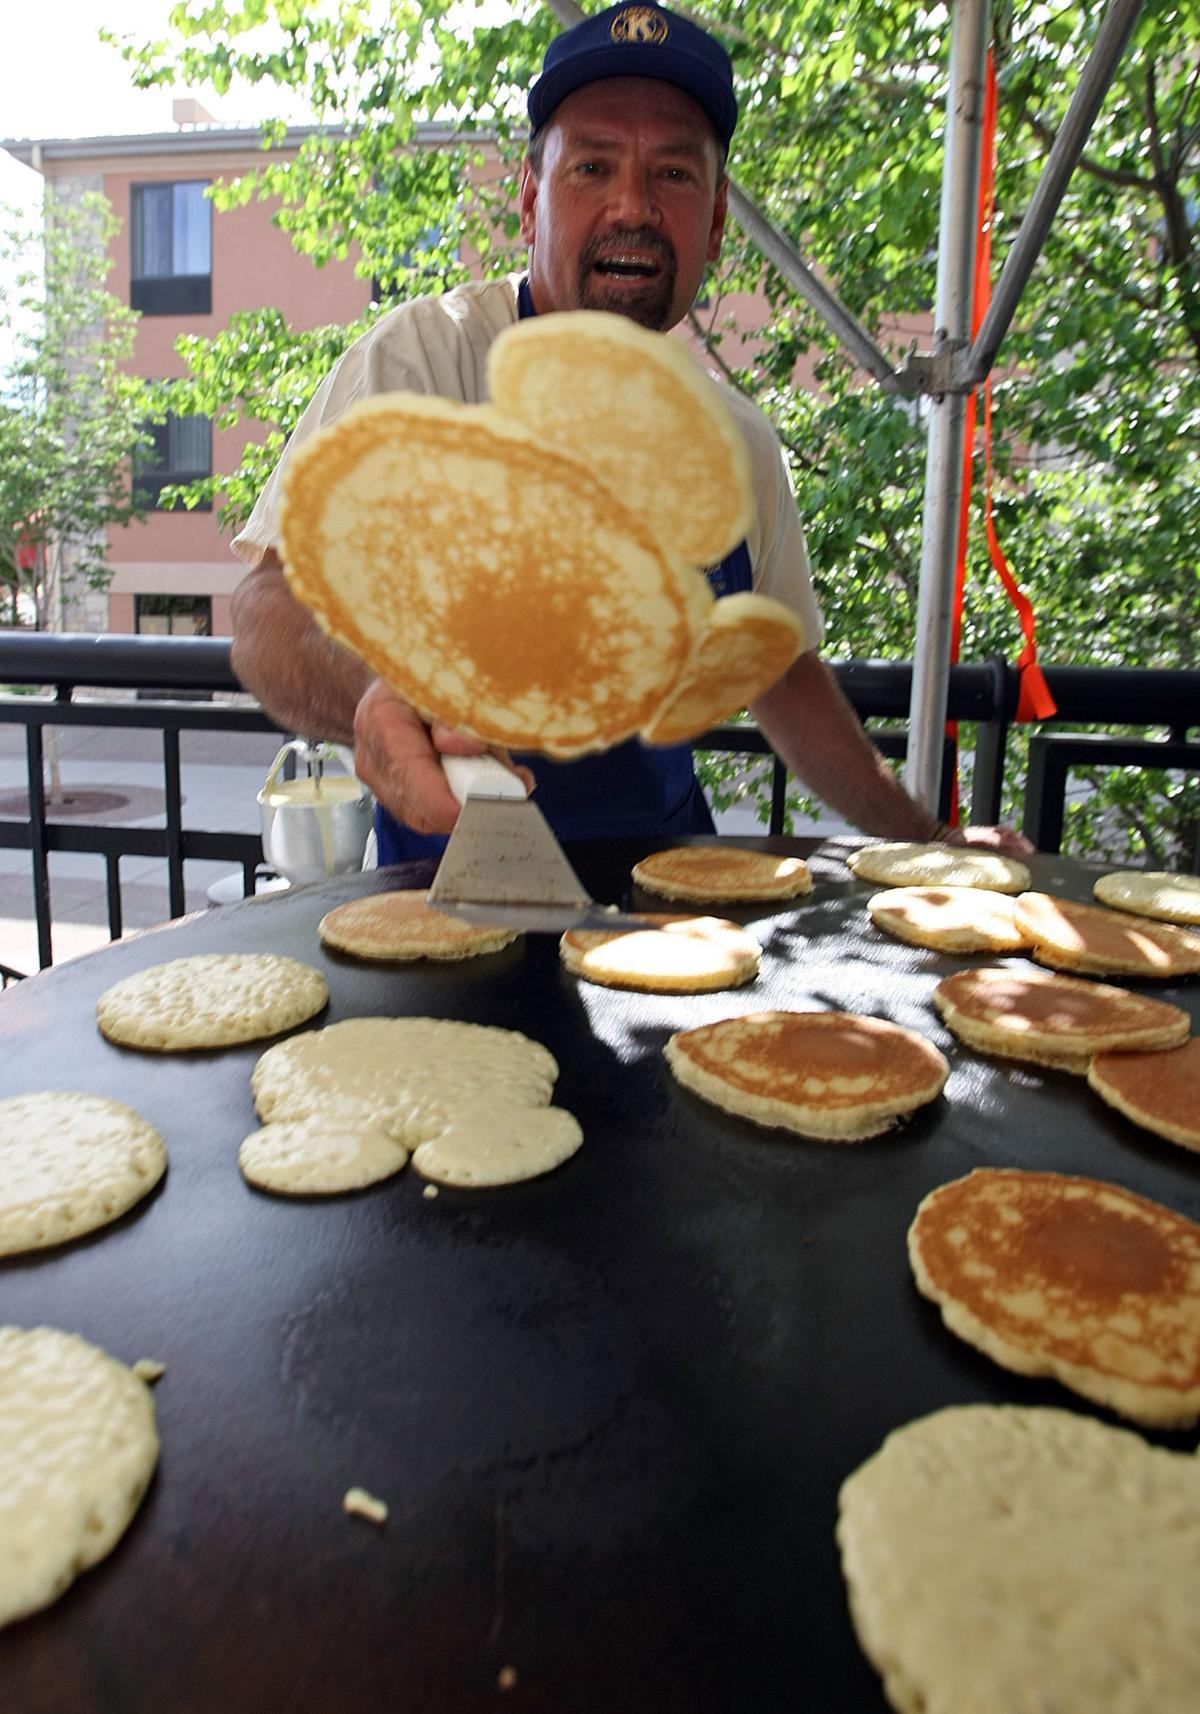 Kiwanis Pancake Day brings breakfast, kids fun together